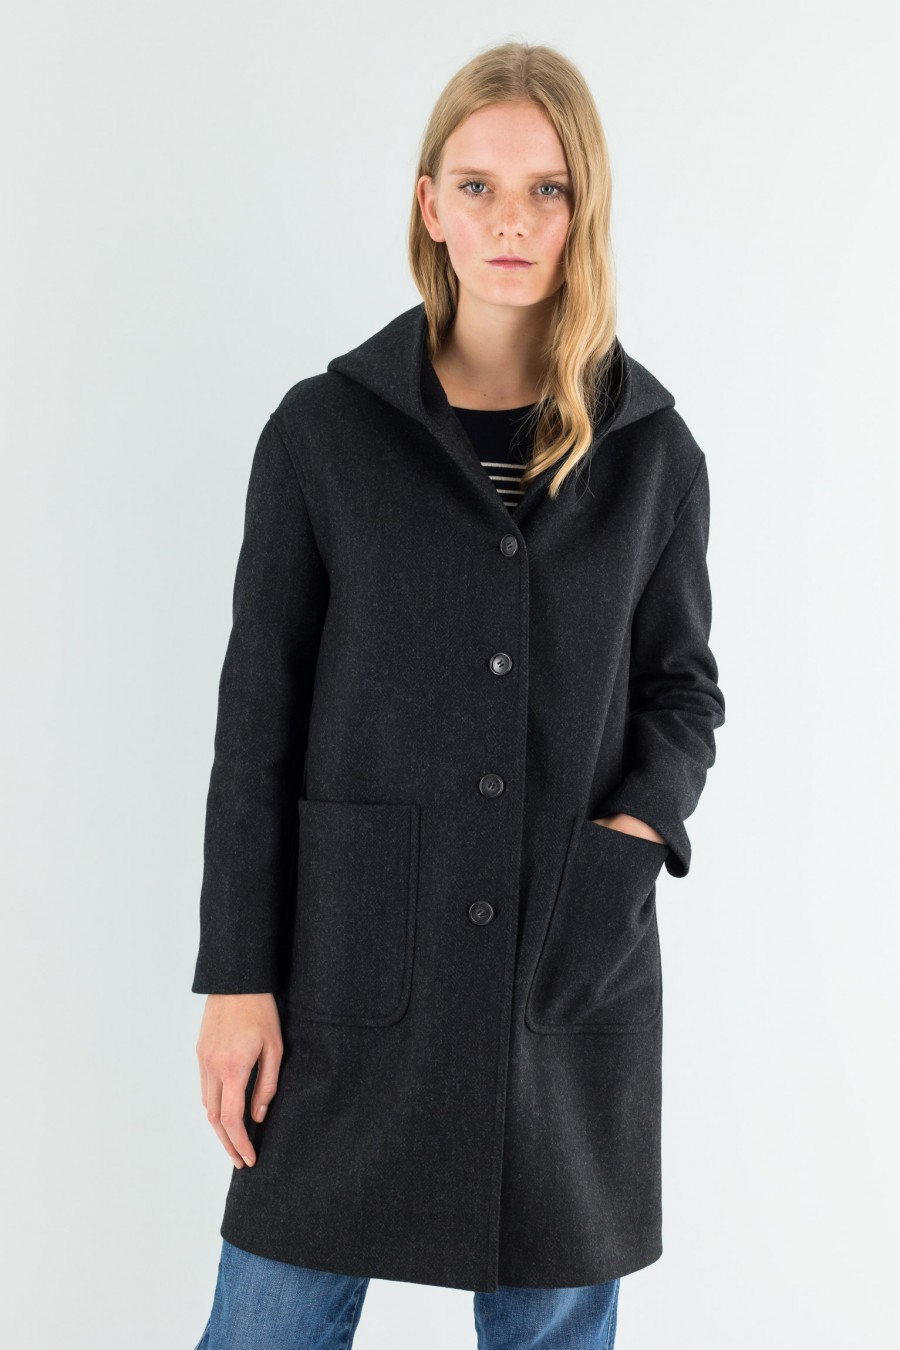 gray anthracite fish spine coat